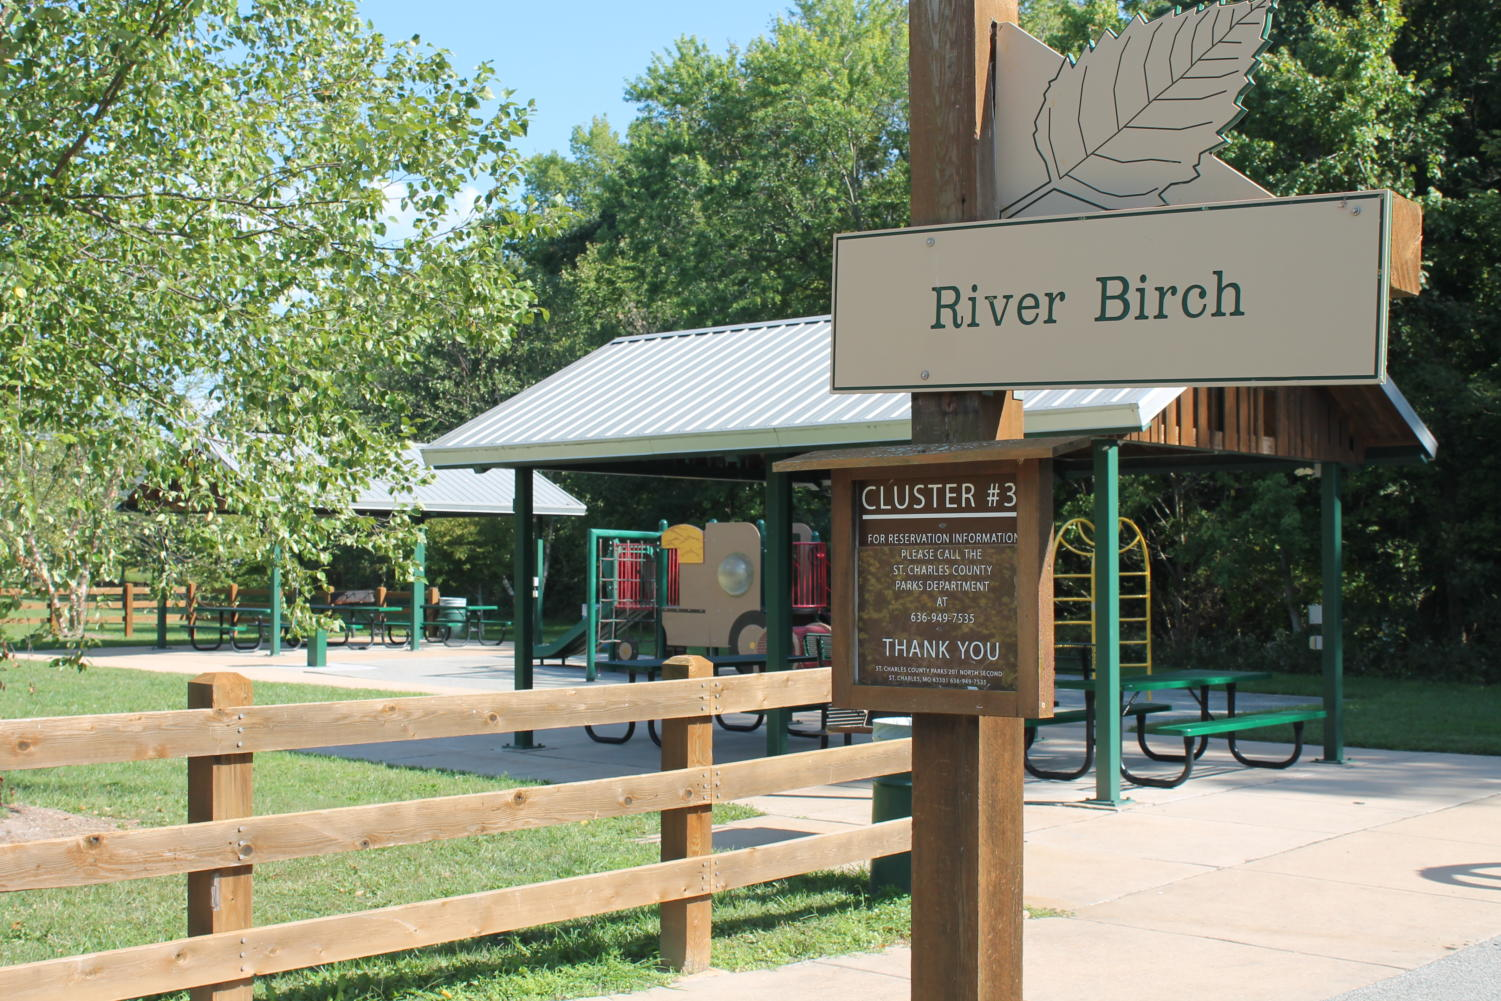 The River Birch trail head is one of the most popular trail heads in the park.